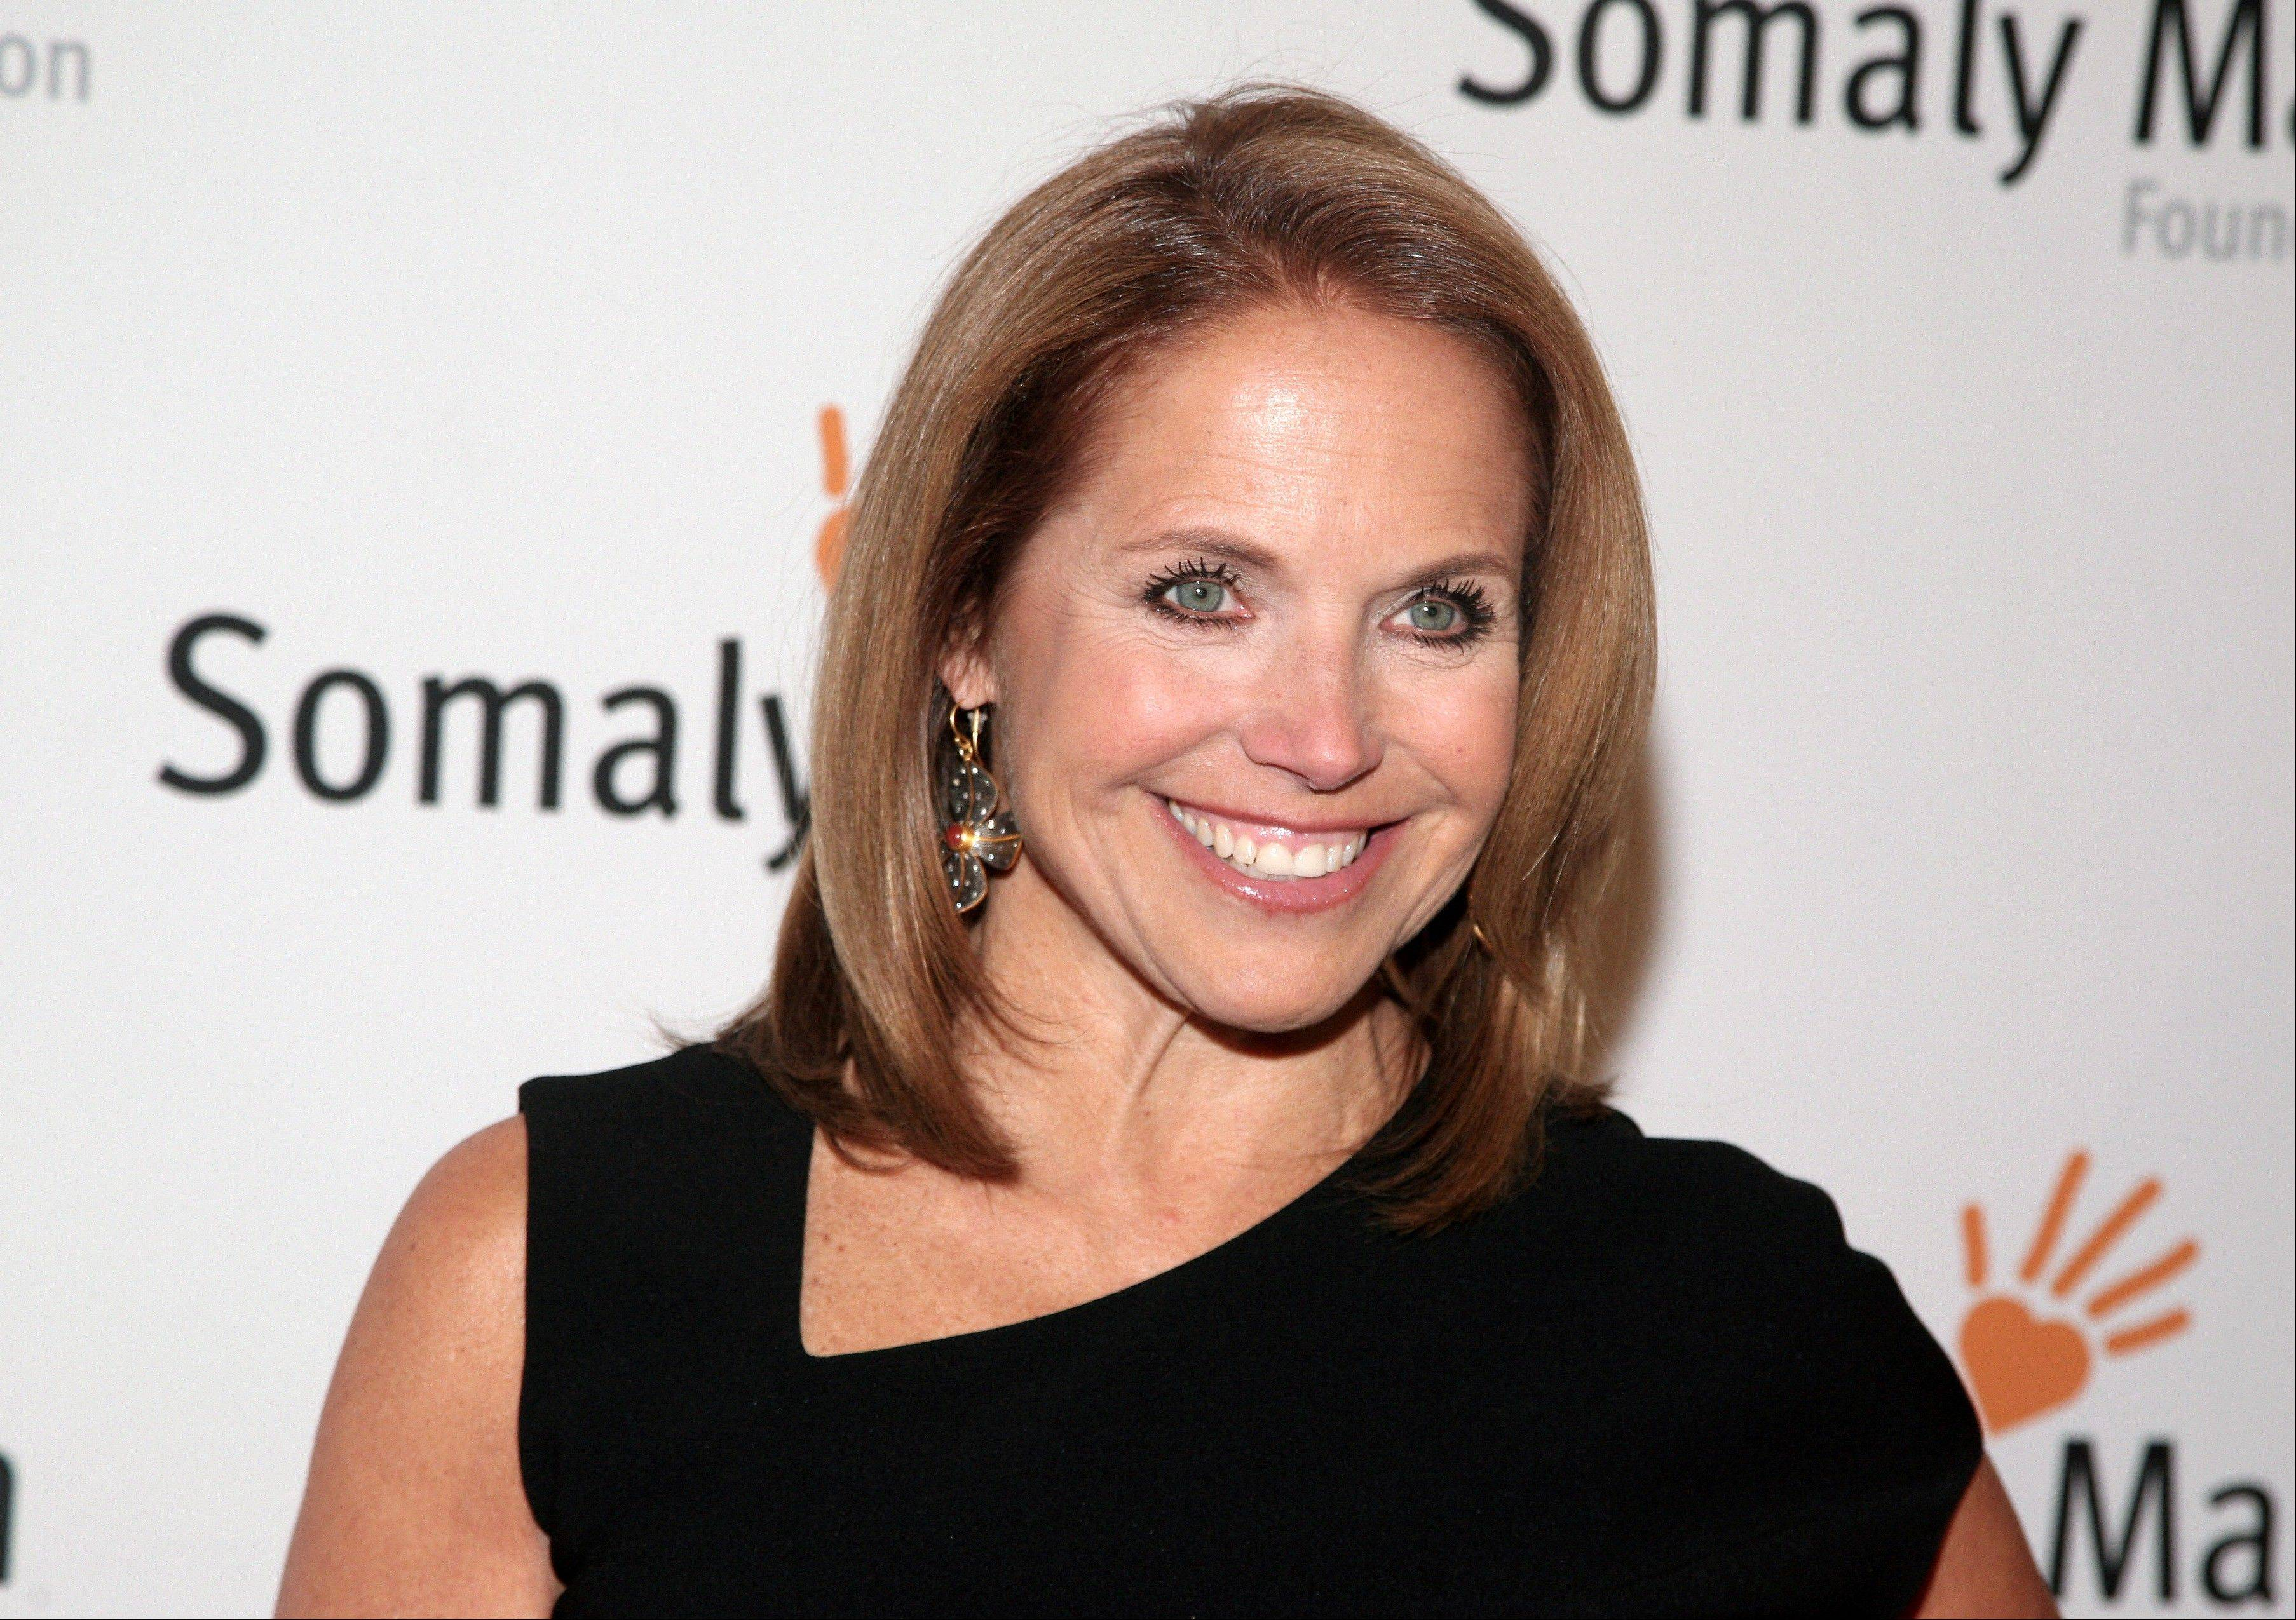 TV host Katie Couric at the Somaly Mam Foundation Gala in New York.